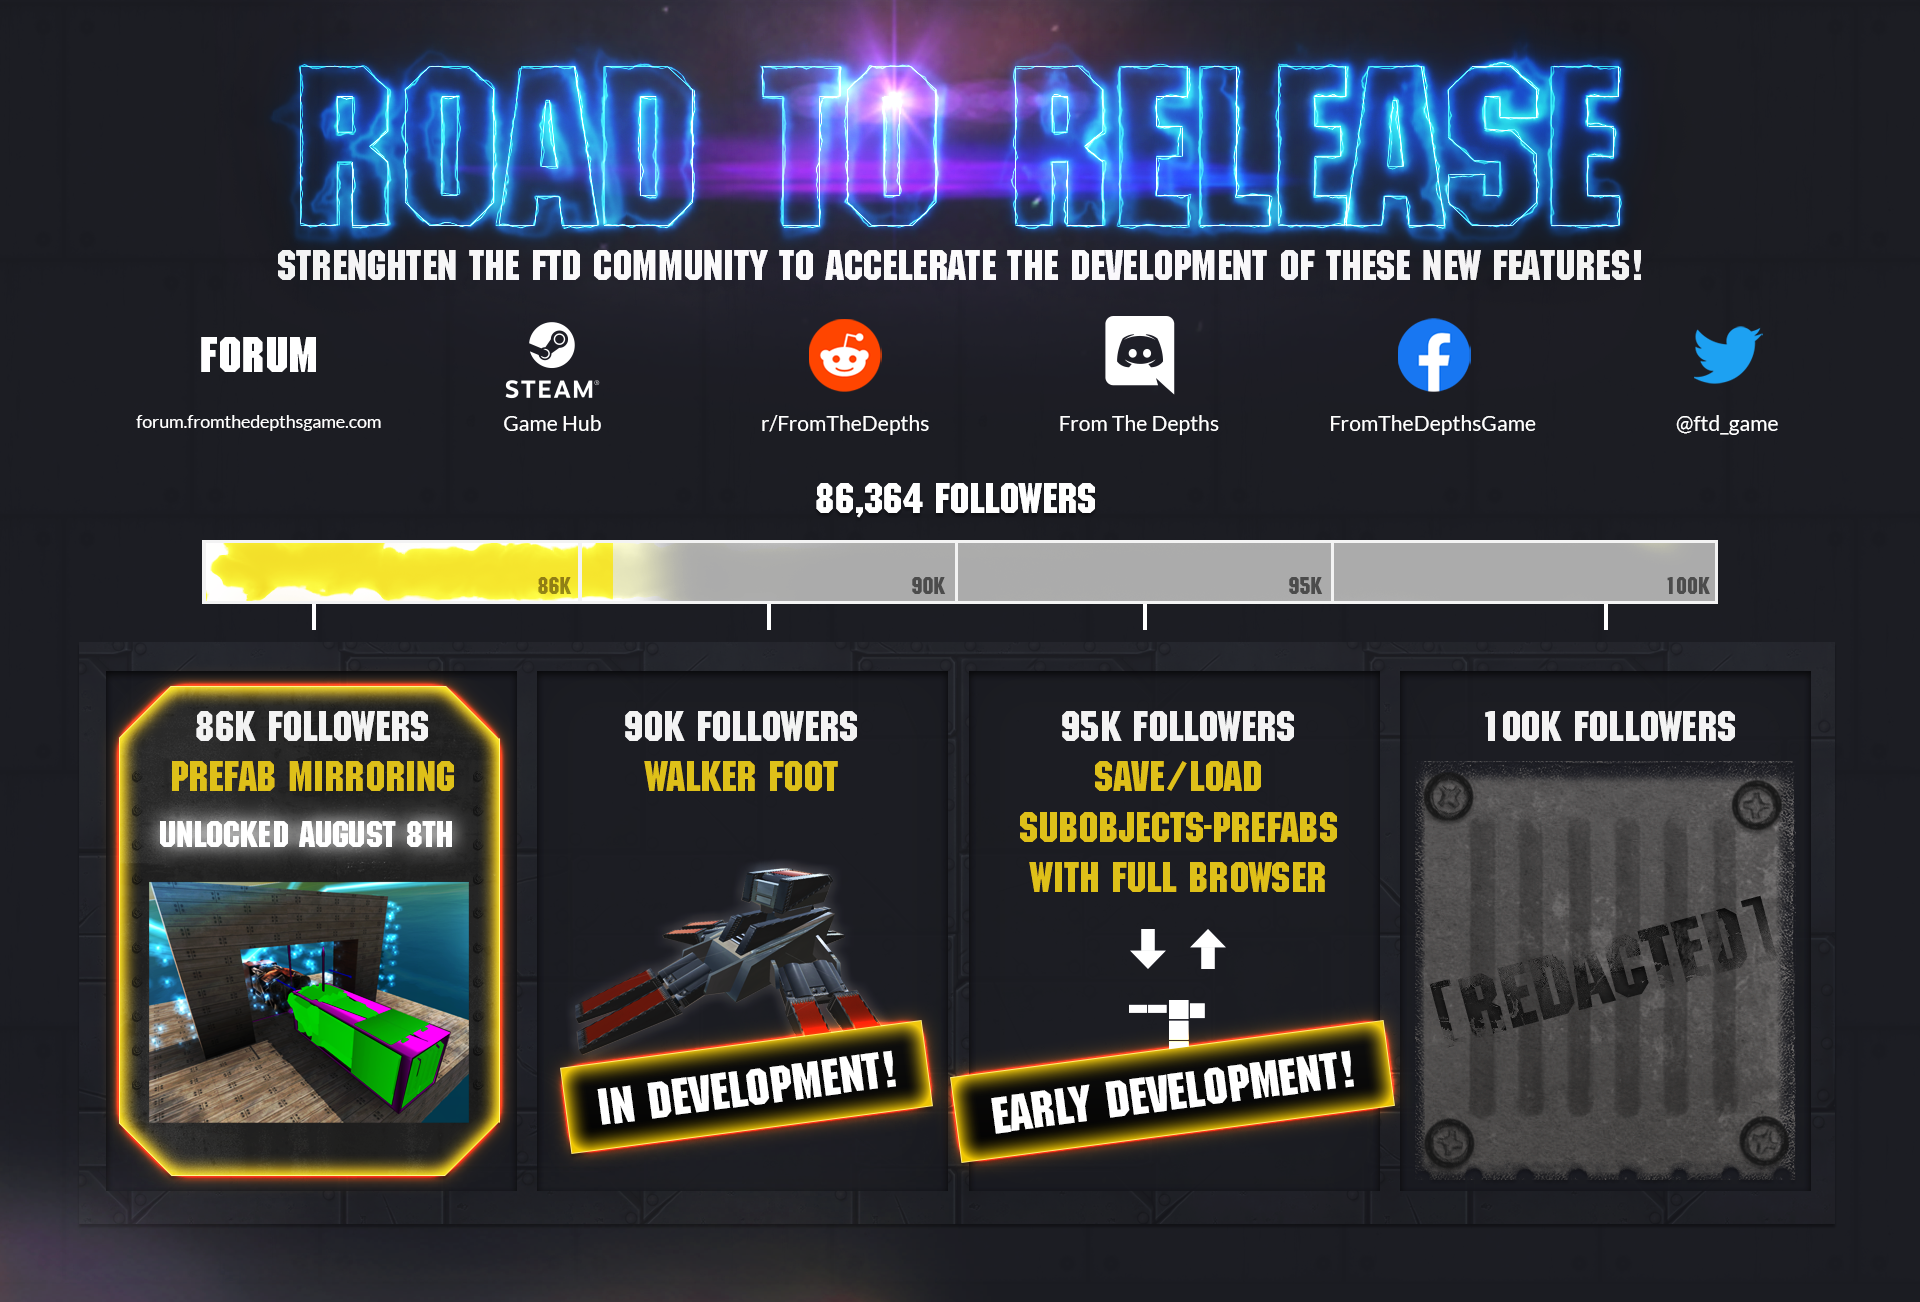 Aug 7 We have hit the first road to release milestone ! :D From